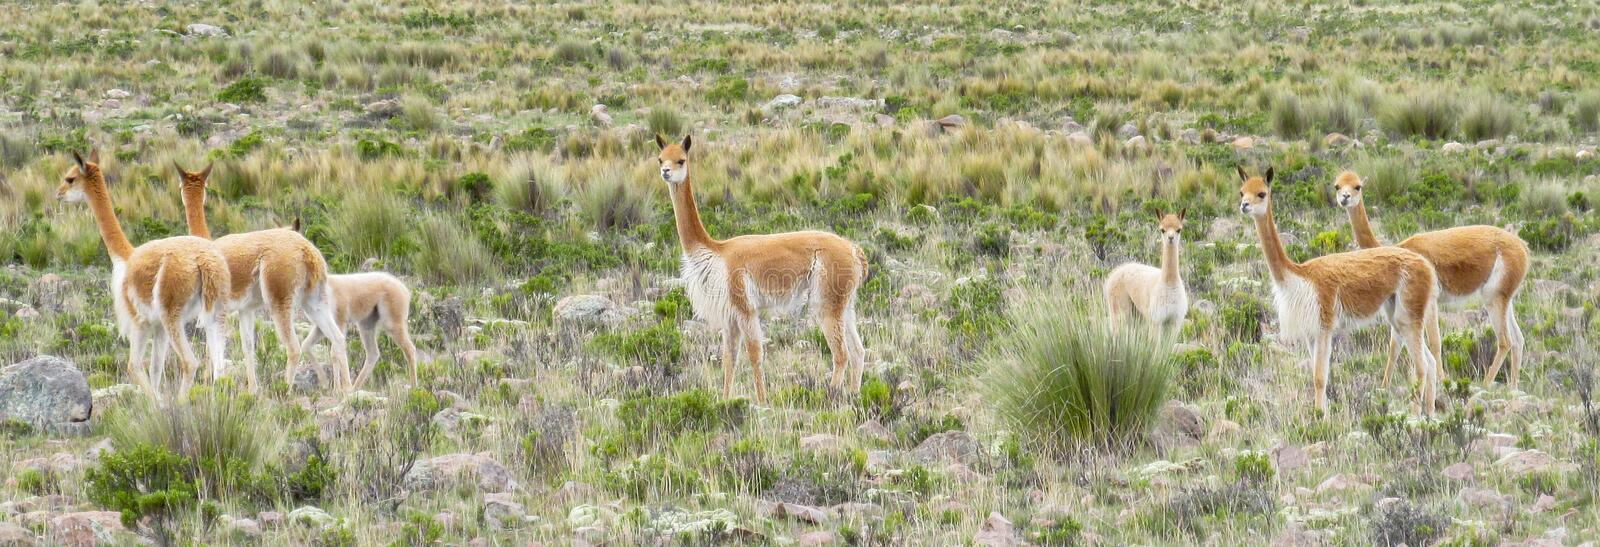 Wild Guanaco herd in pampa. Guanaco in pampa bushes in Patagonia. South American camelid wild animals on the green field in Patagonia, Argentina and Chile stock photos